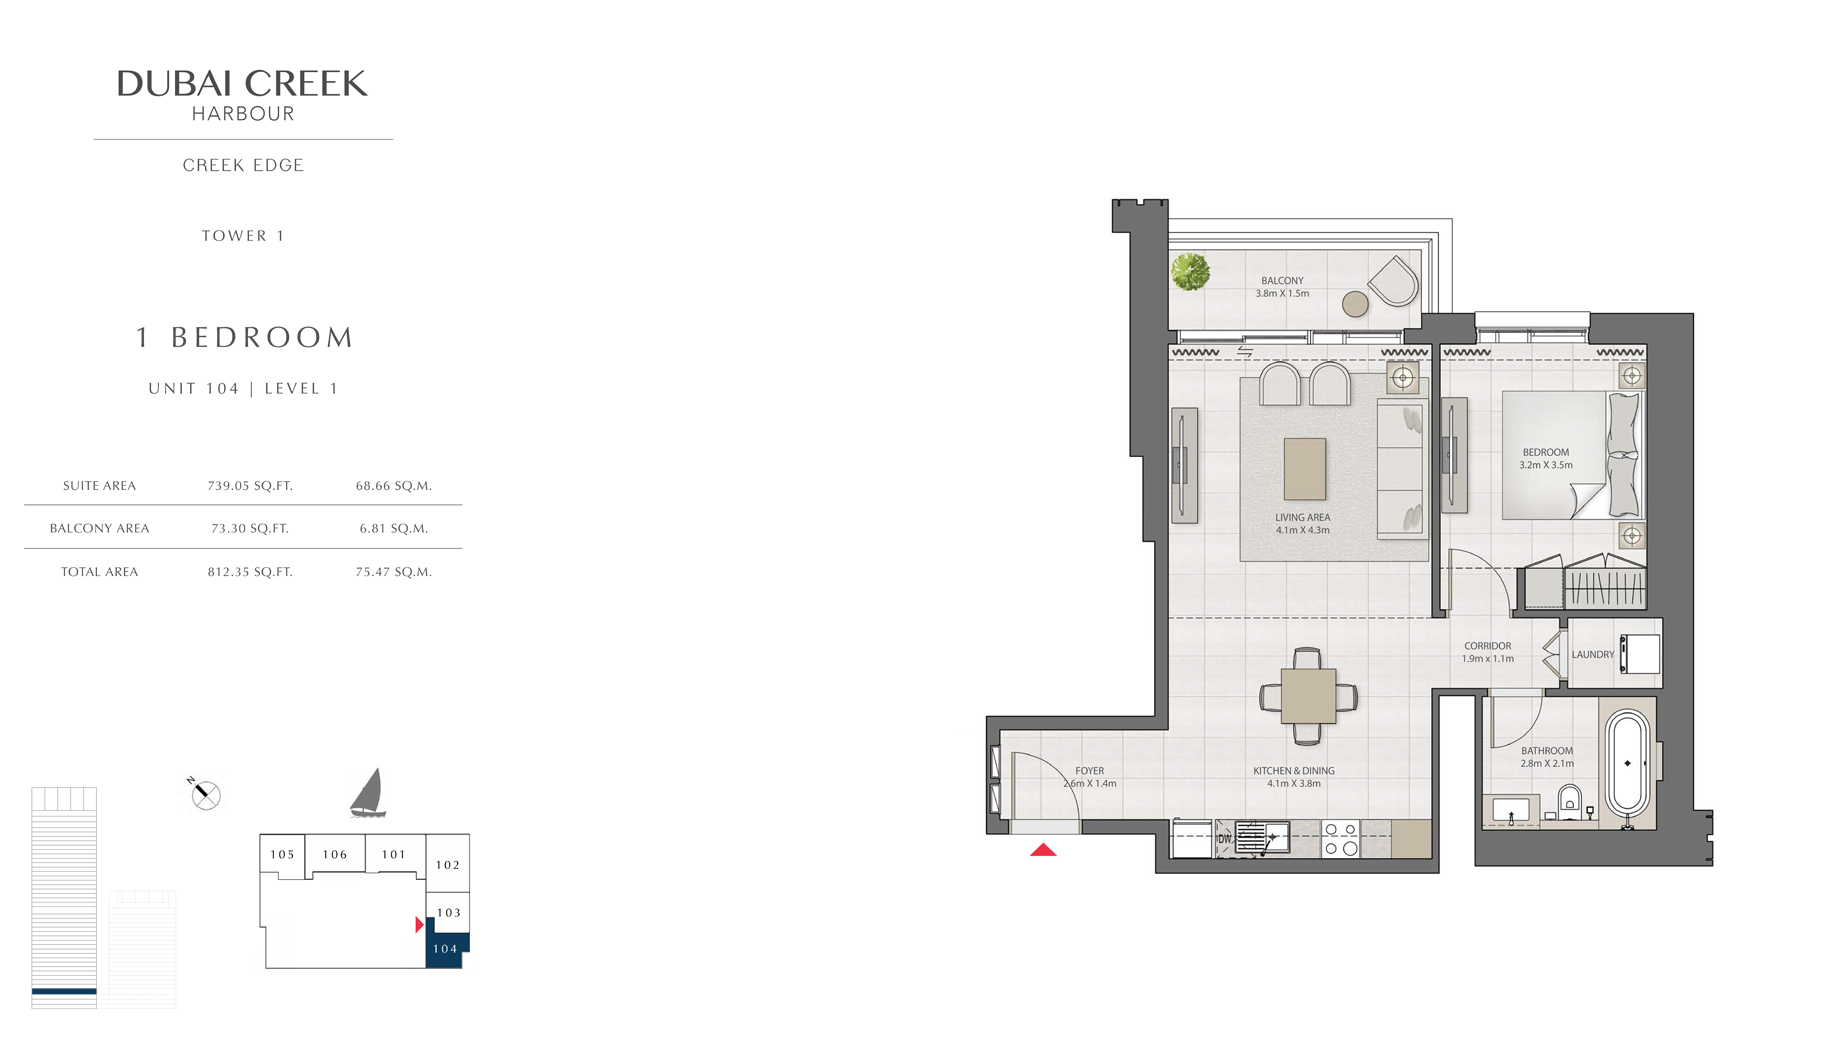 1 Bedroom Tower 1 Unit 104 Level 1 Size 812 sq.ft